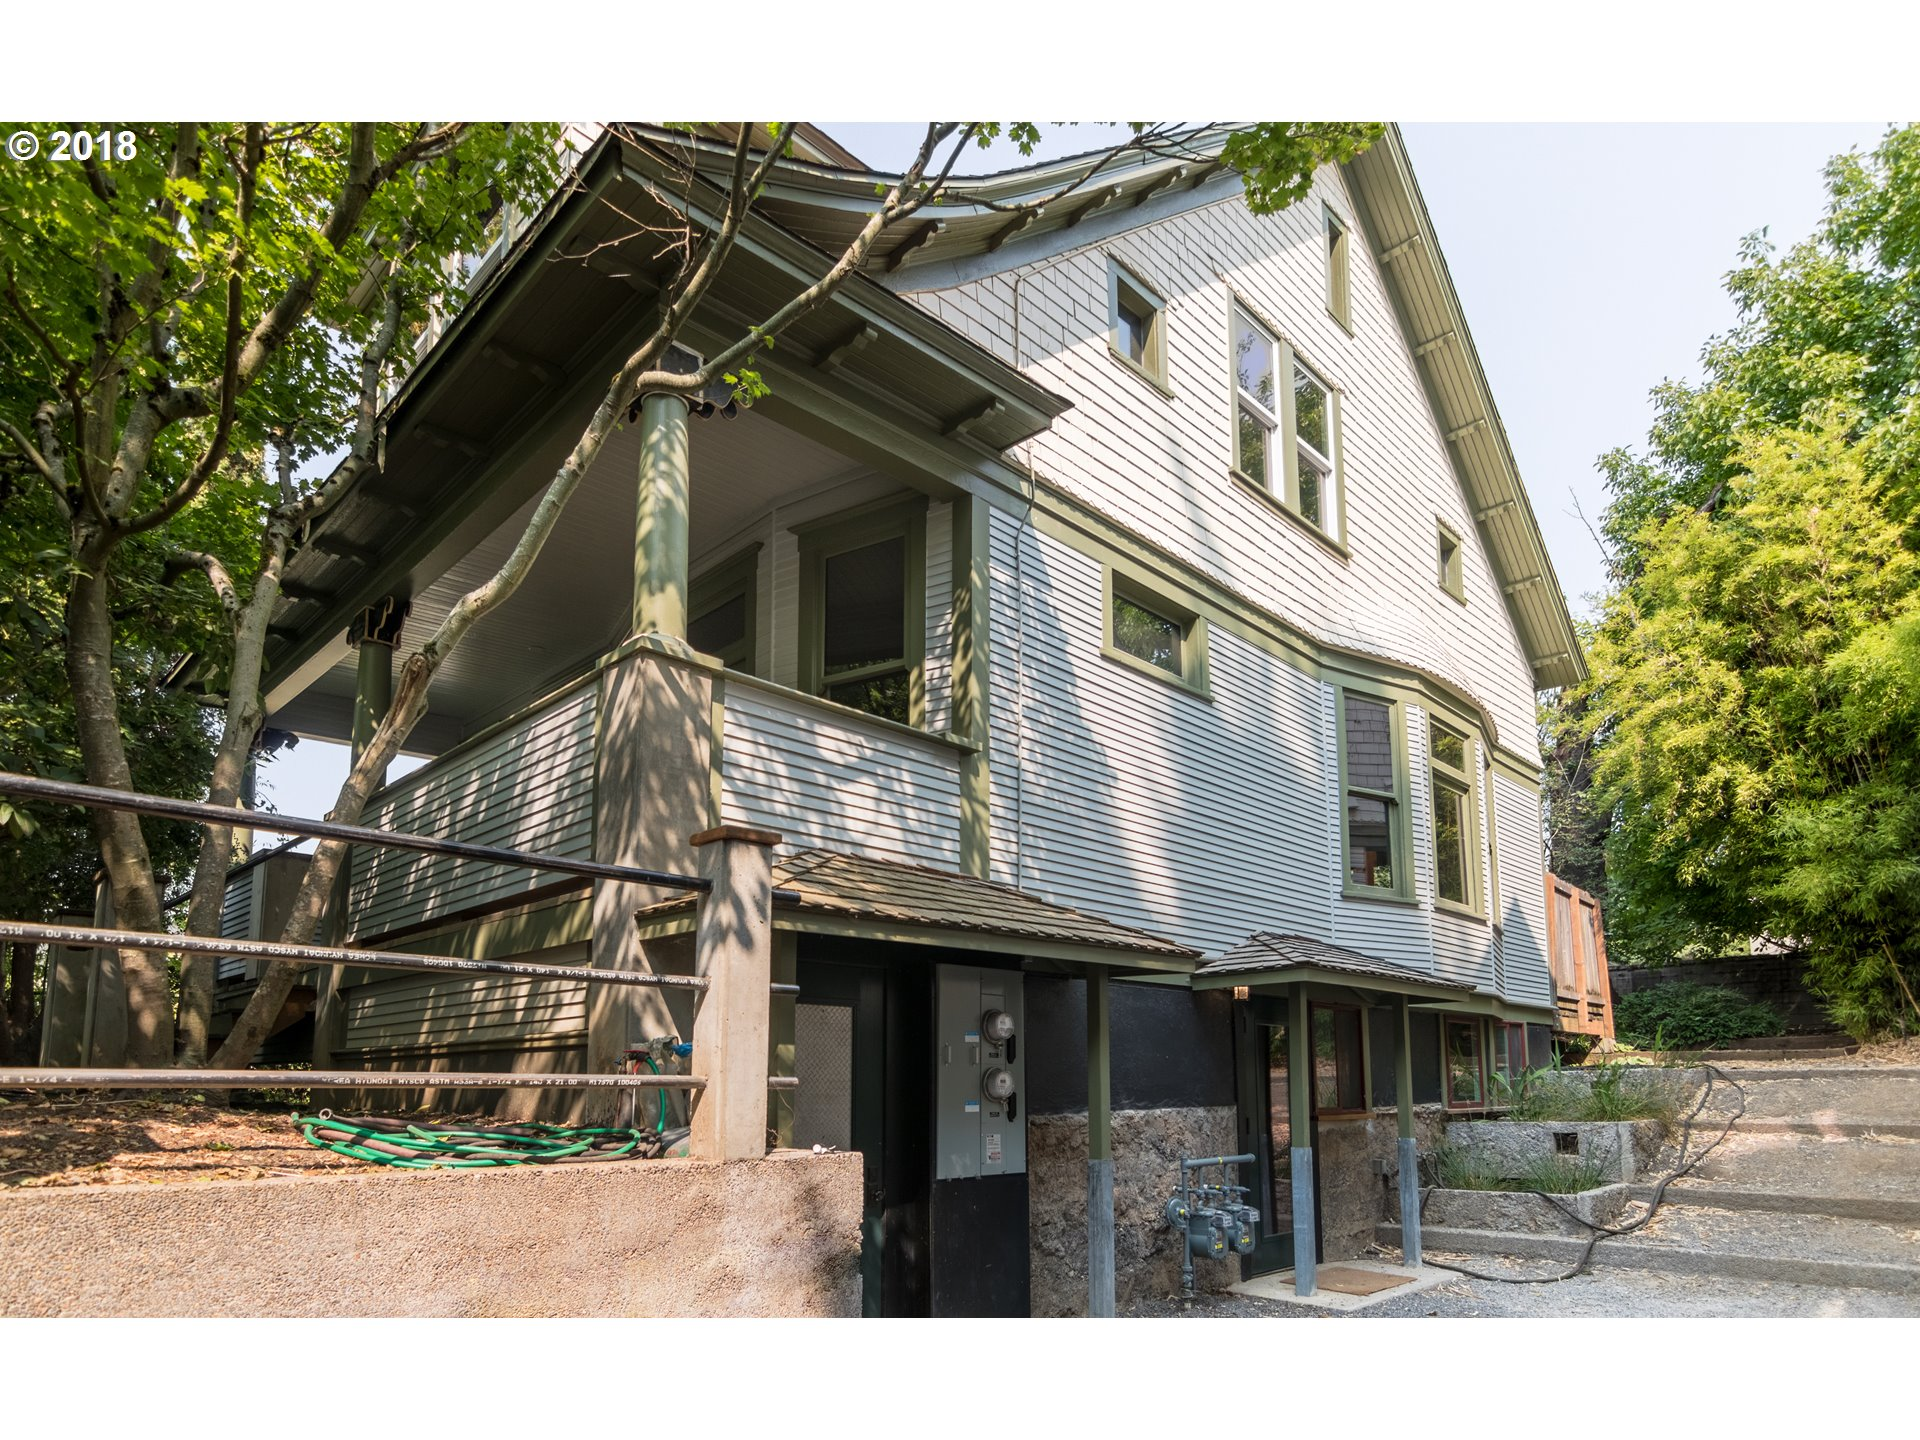 Energy Efficient Portland duplex in the heart of NE. This 1900's craftsman has been completely restored down to the studs, ready to push forward for another 100 years.  All new windows, siding, insulation, paint, and 9/10 energy score. Both units are separately metered, & lower unit is fully ADAA accessible. Property still has the original charm with all the updates. Must see, great rental opportunity, dual living, or in-law quarters. [Home Energy Score = 9. HES Report at https://api.greenbuildingregistry.com/report/hes/OR10014290-20180814]